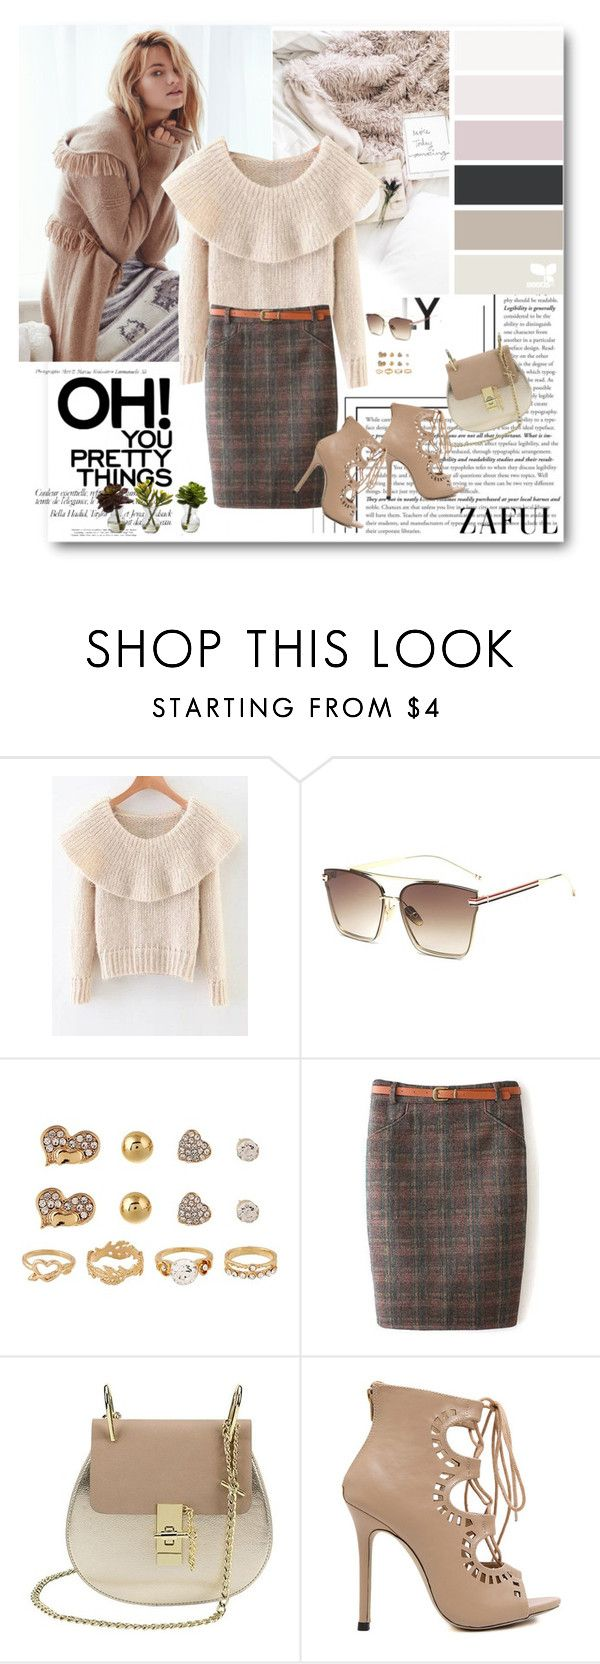 """""""Fluffy Overlayed Sweater"""" by merylicious91 ❤ liked on Polyvore featuring Nearly Natural and zaful"""